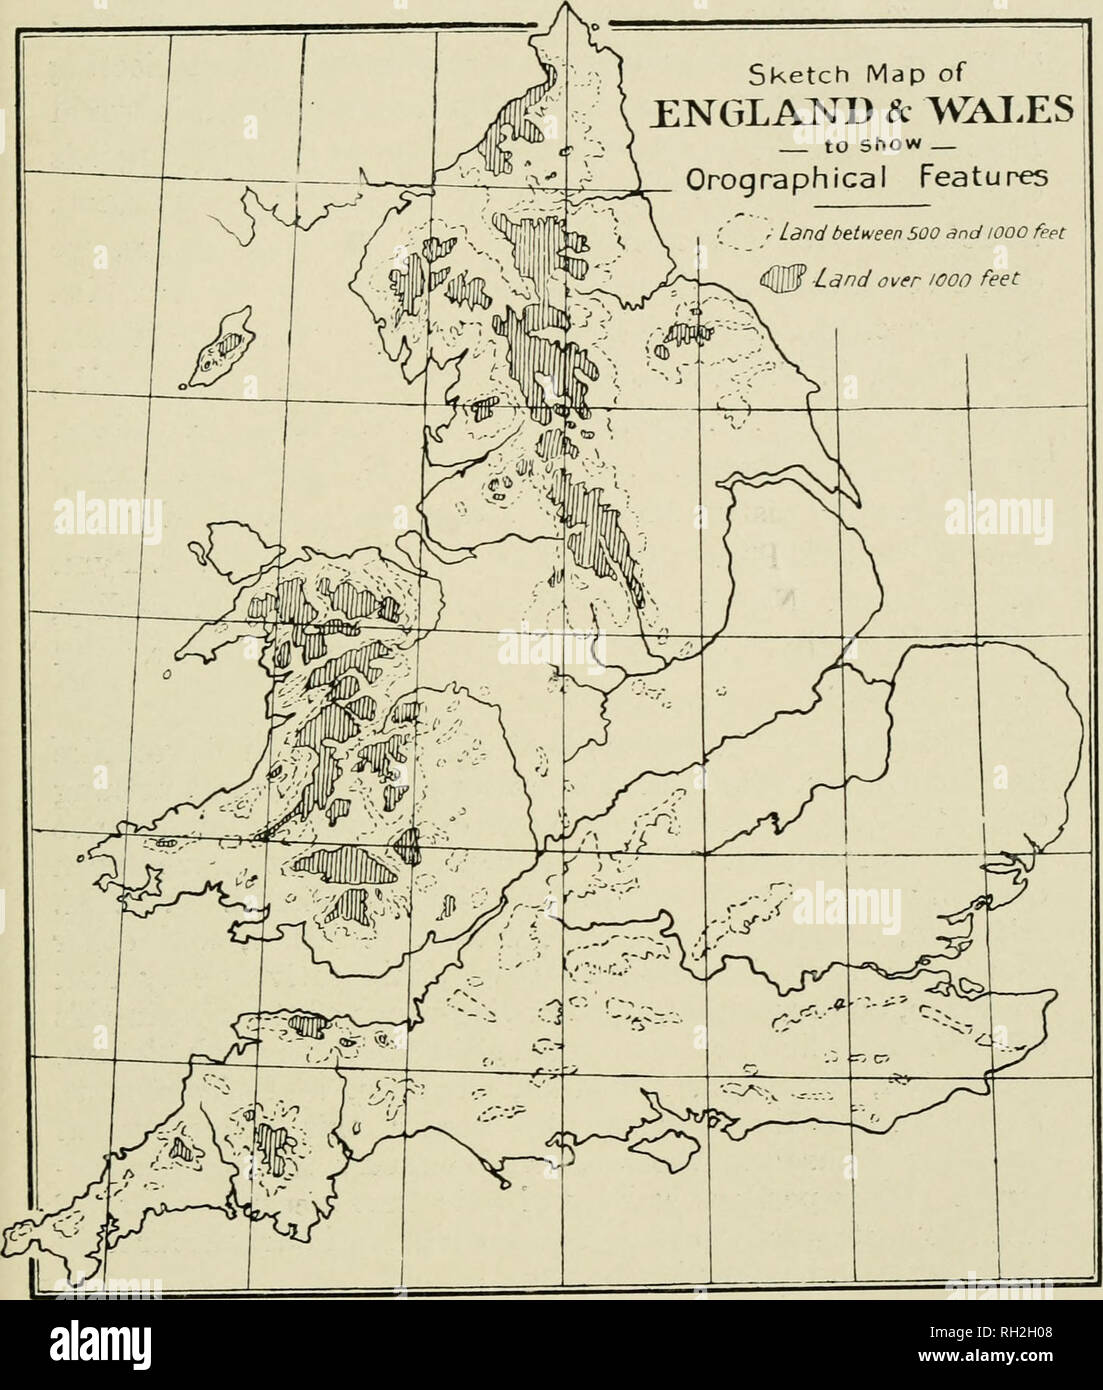 Map Of England Please.British Birds Birds 5 Sketch Map Of England D Wai Es To Show